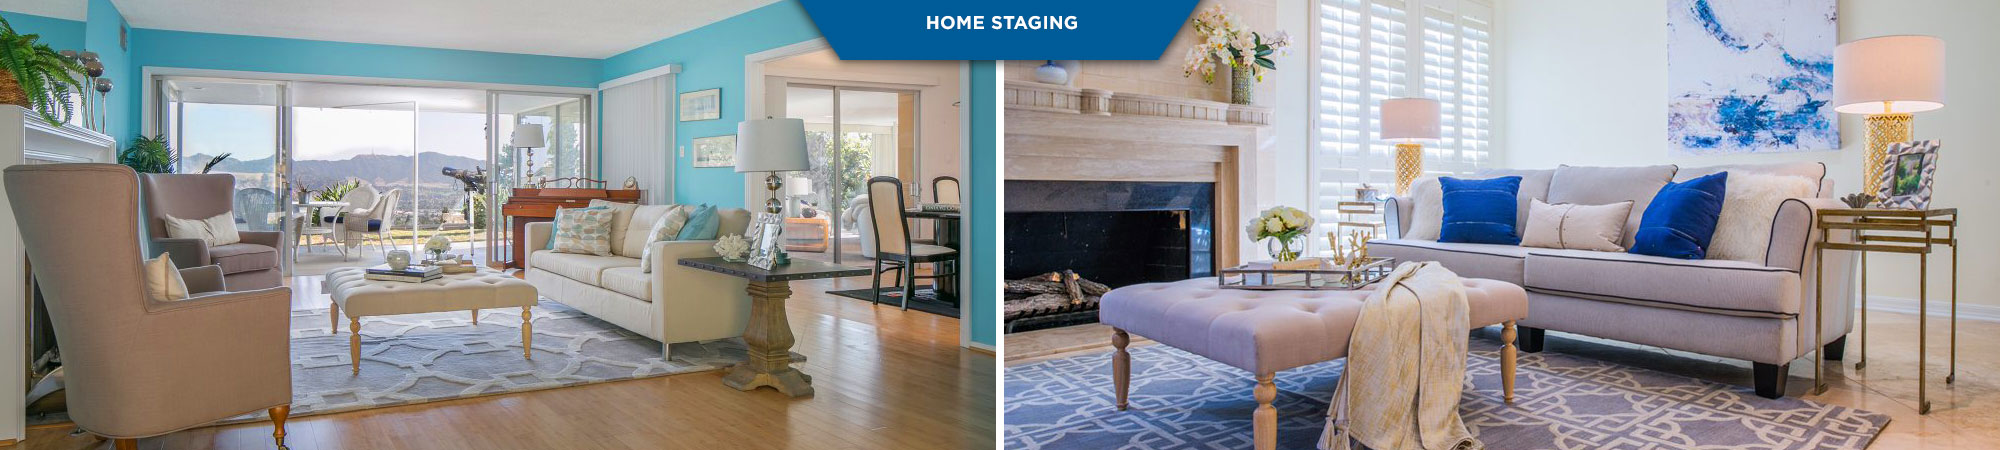 Home and apartment staging